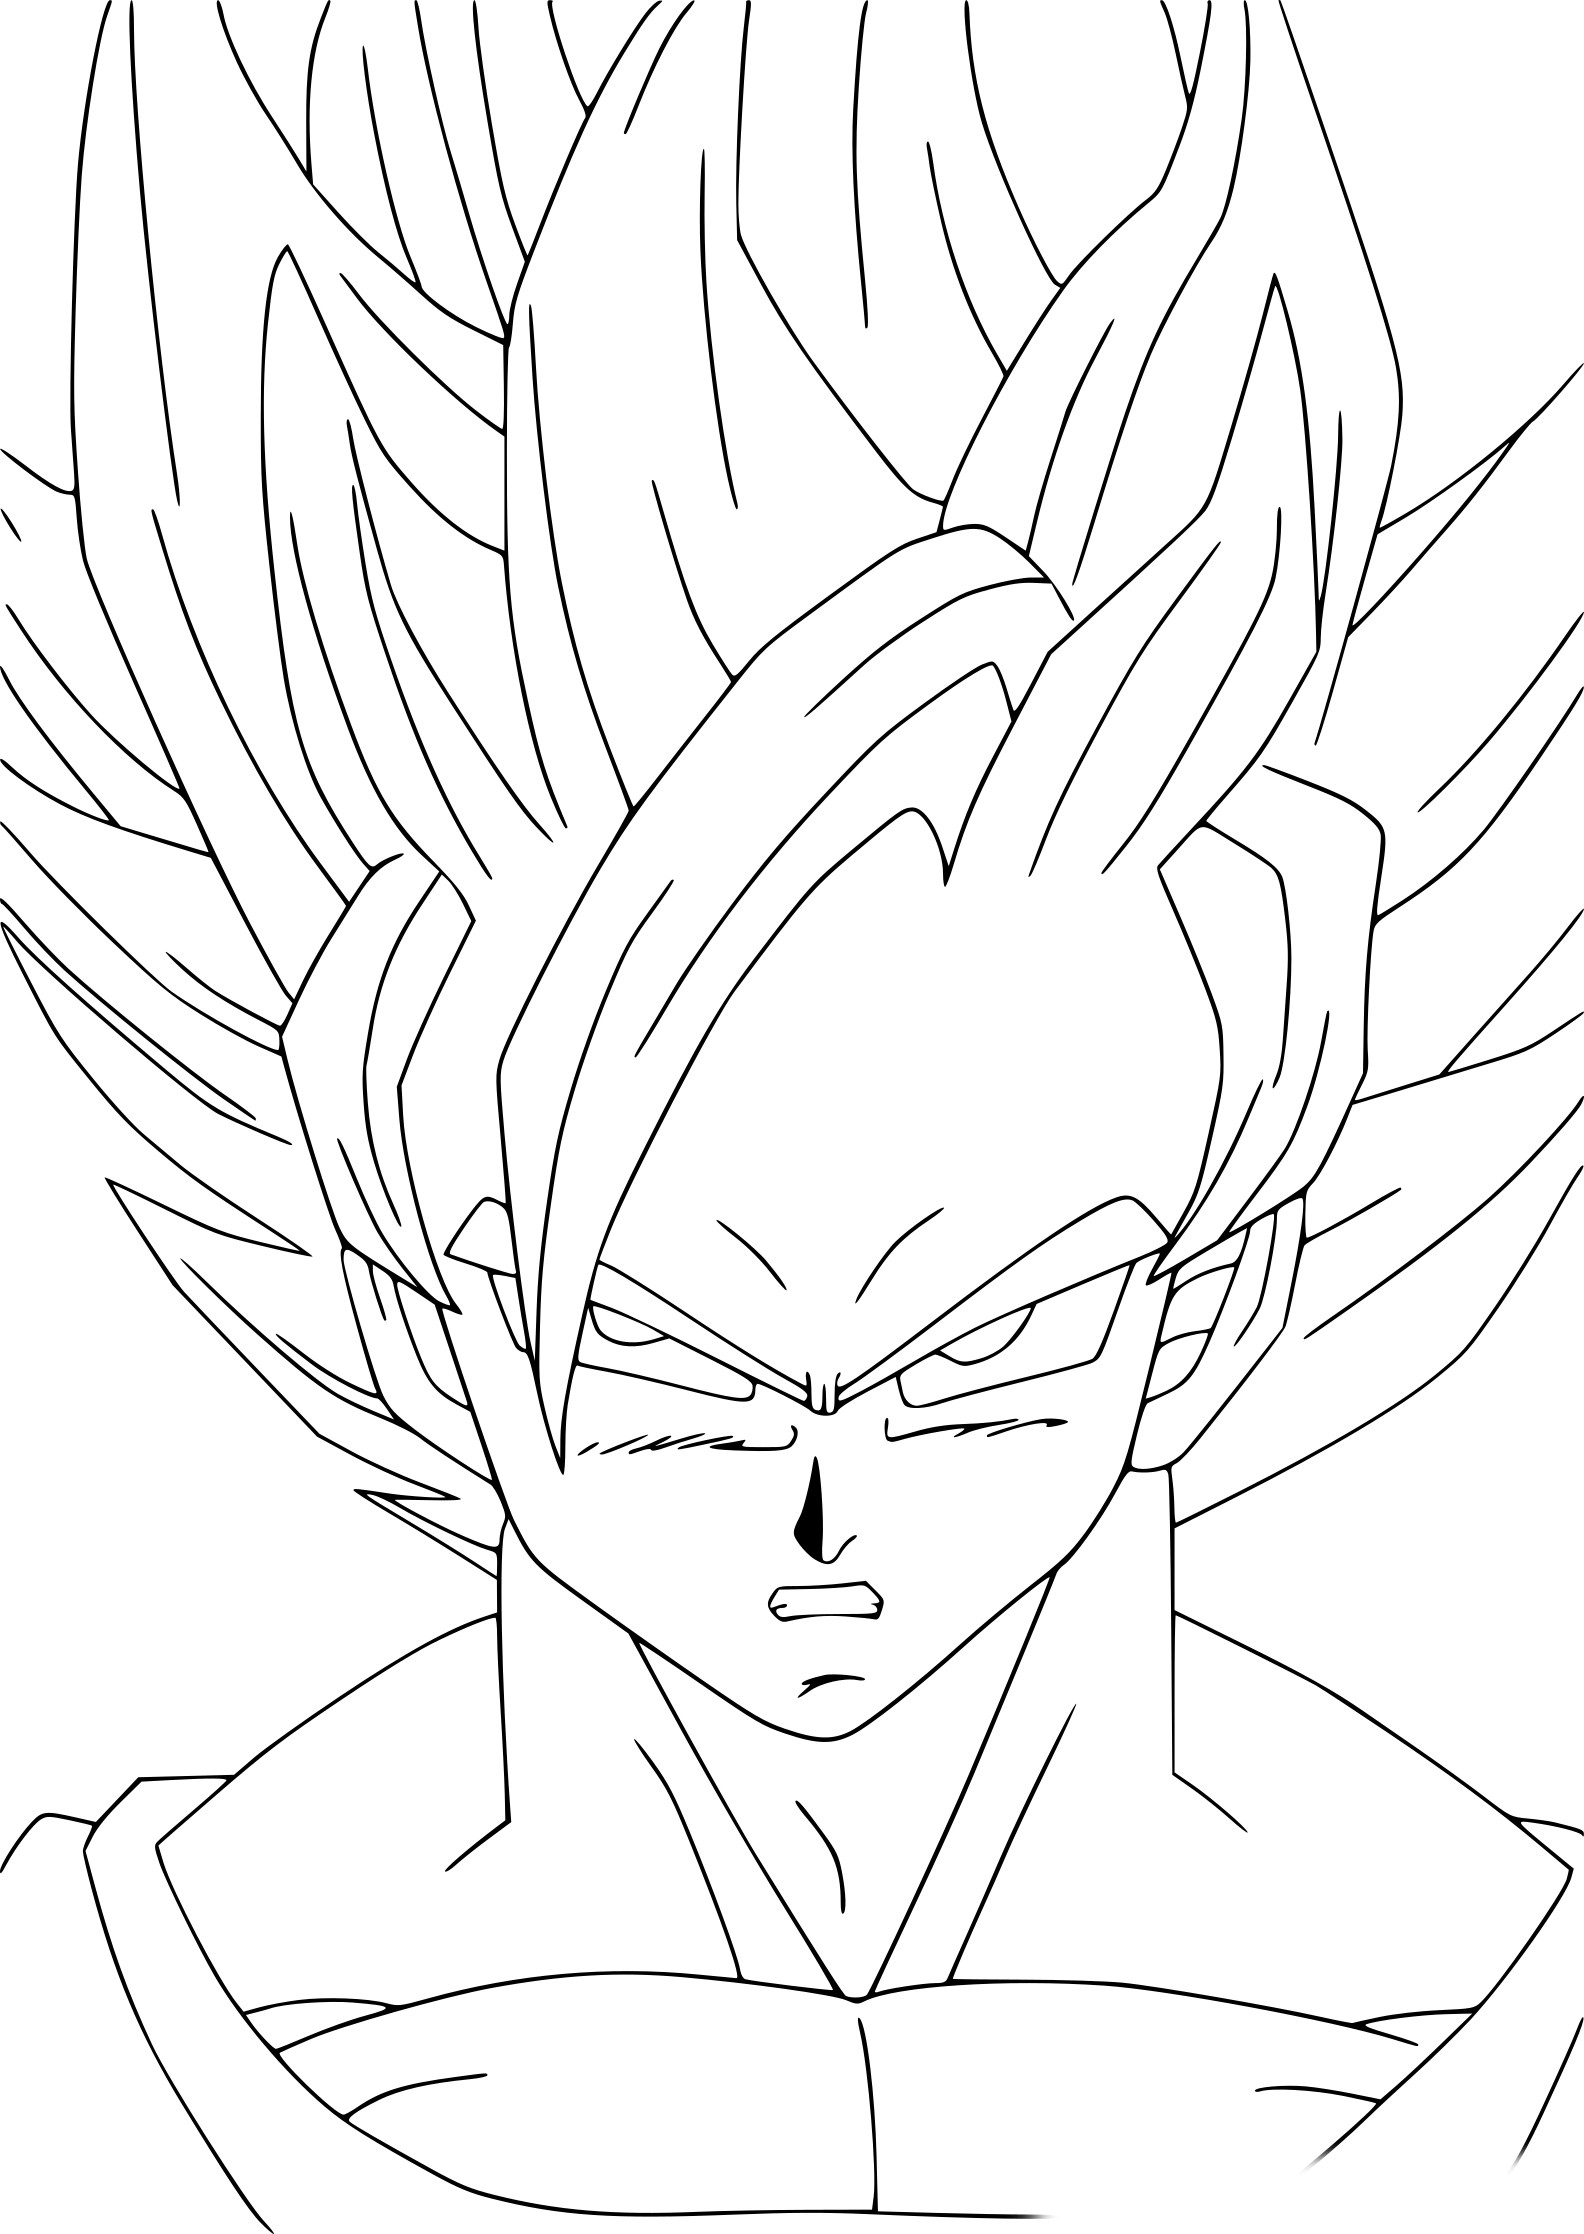 Coloriage Goku Dbz À Imprimer Sur Coloriages serapportantà Coloriage Dragon Ball Z Sangoku